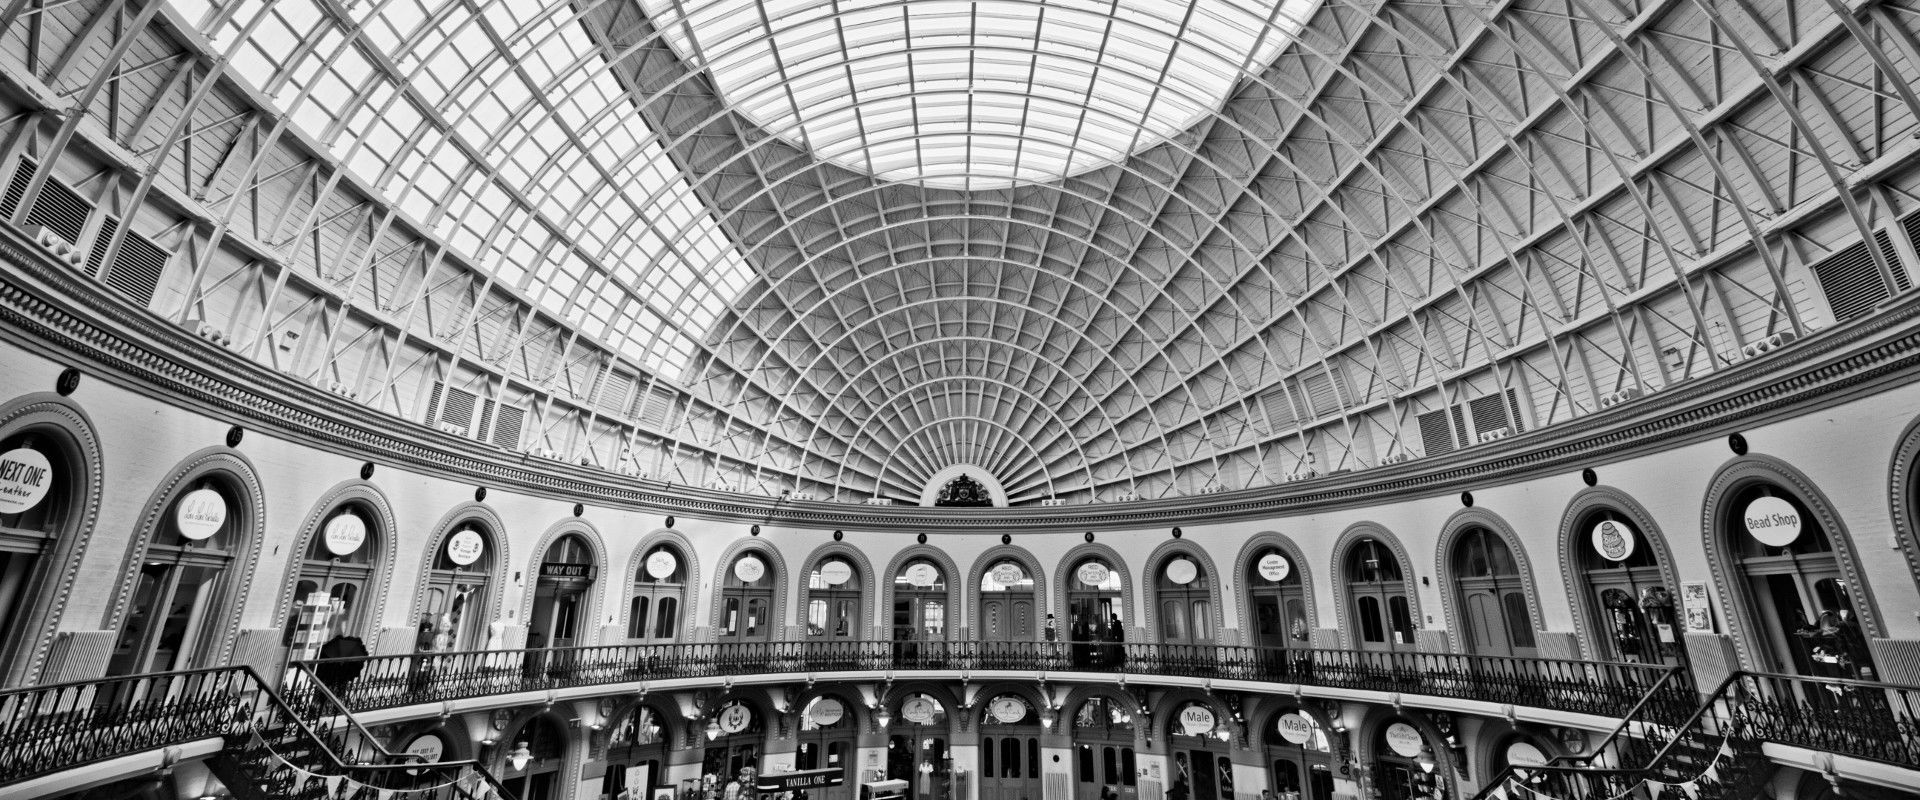 Corn Exchange, Leeds, United Kingdom